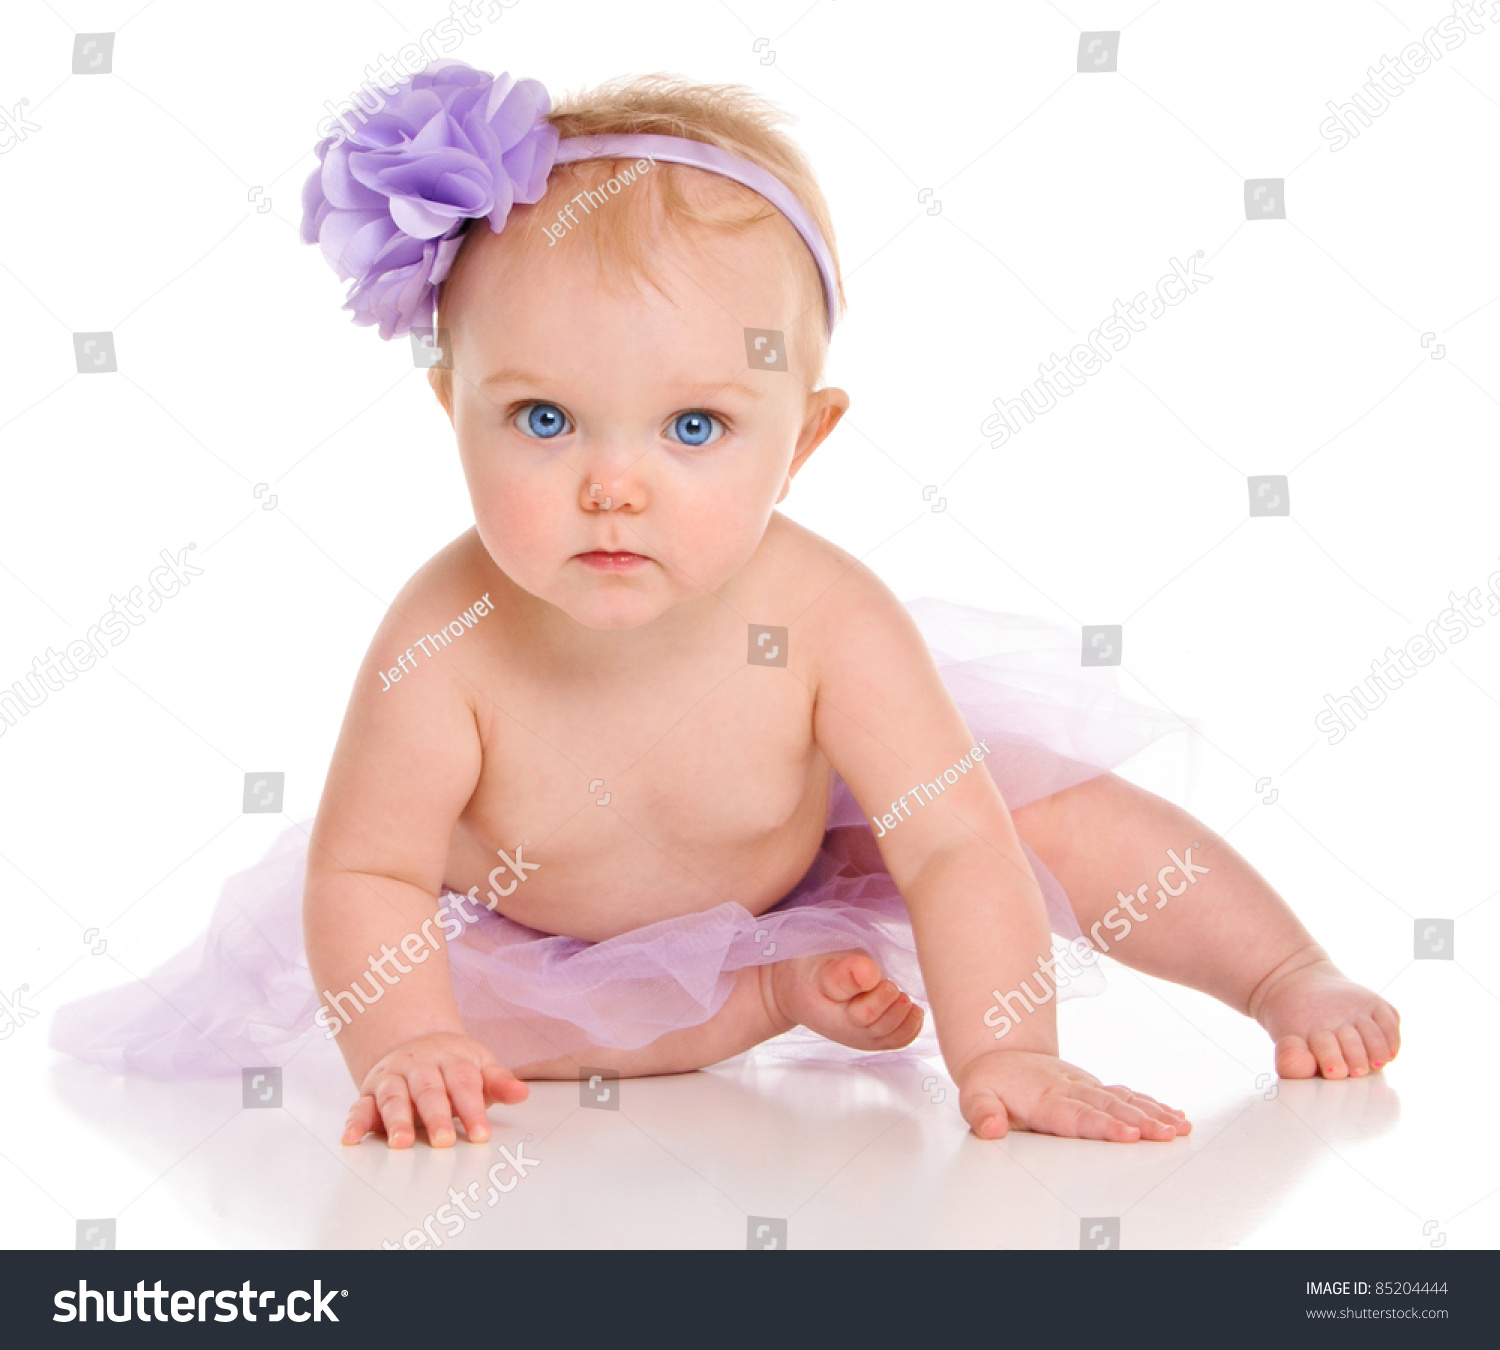 Middle names for girls run the gamut from the traditional connecting names to family surnames to new names carrying deep meaning. These middle names for girls come from all these categories.